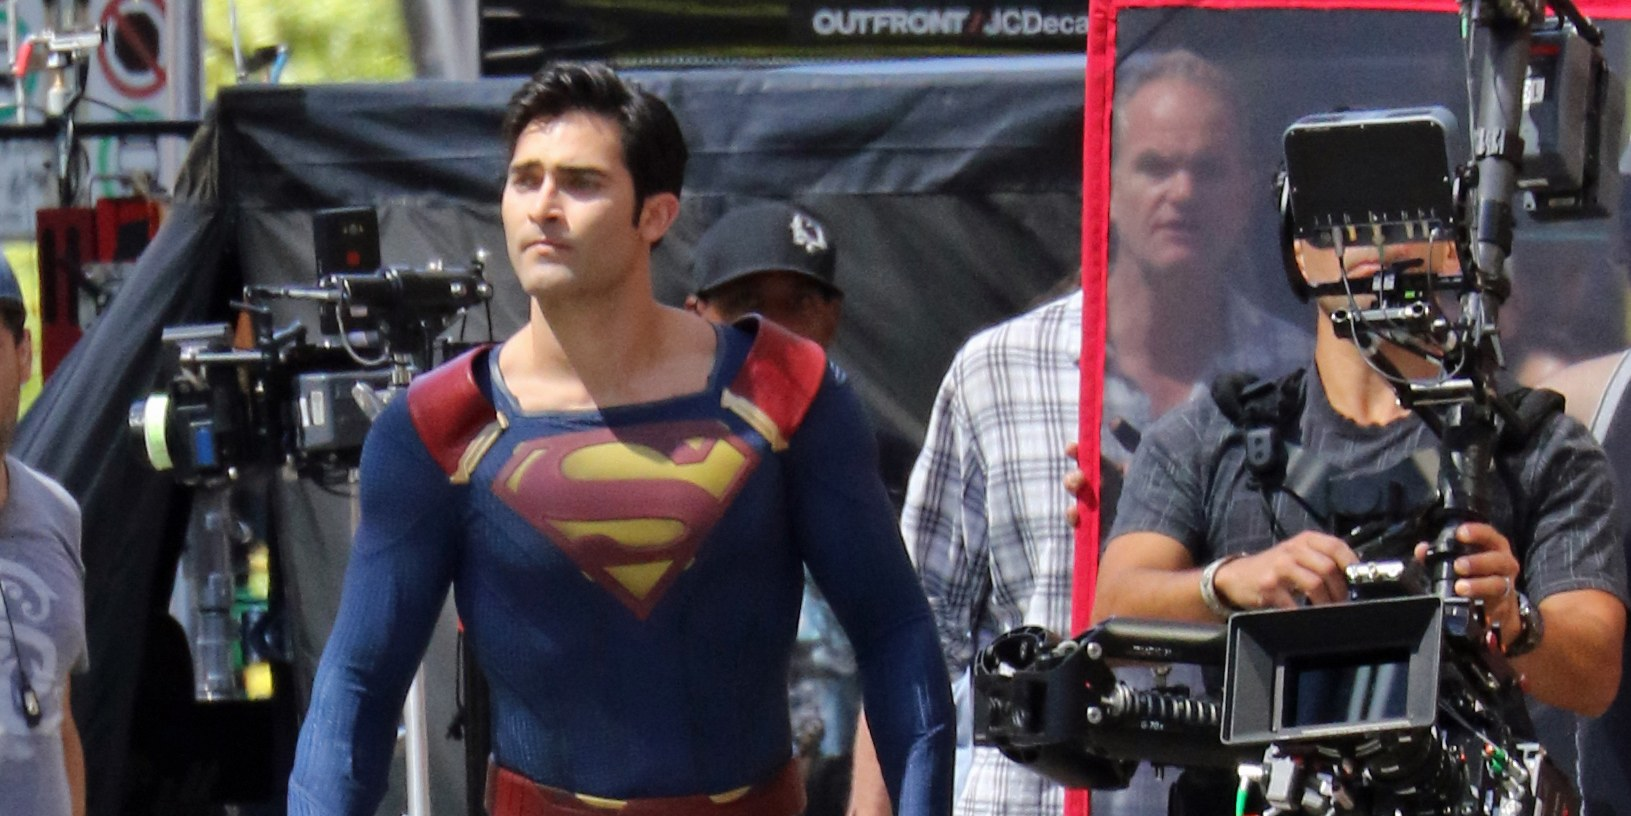 Tyler Hoechlin suits up as Superman for Supergirl shoot in Vancouver (Ken R/Daily Hive)